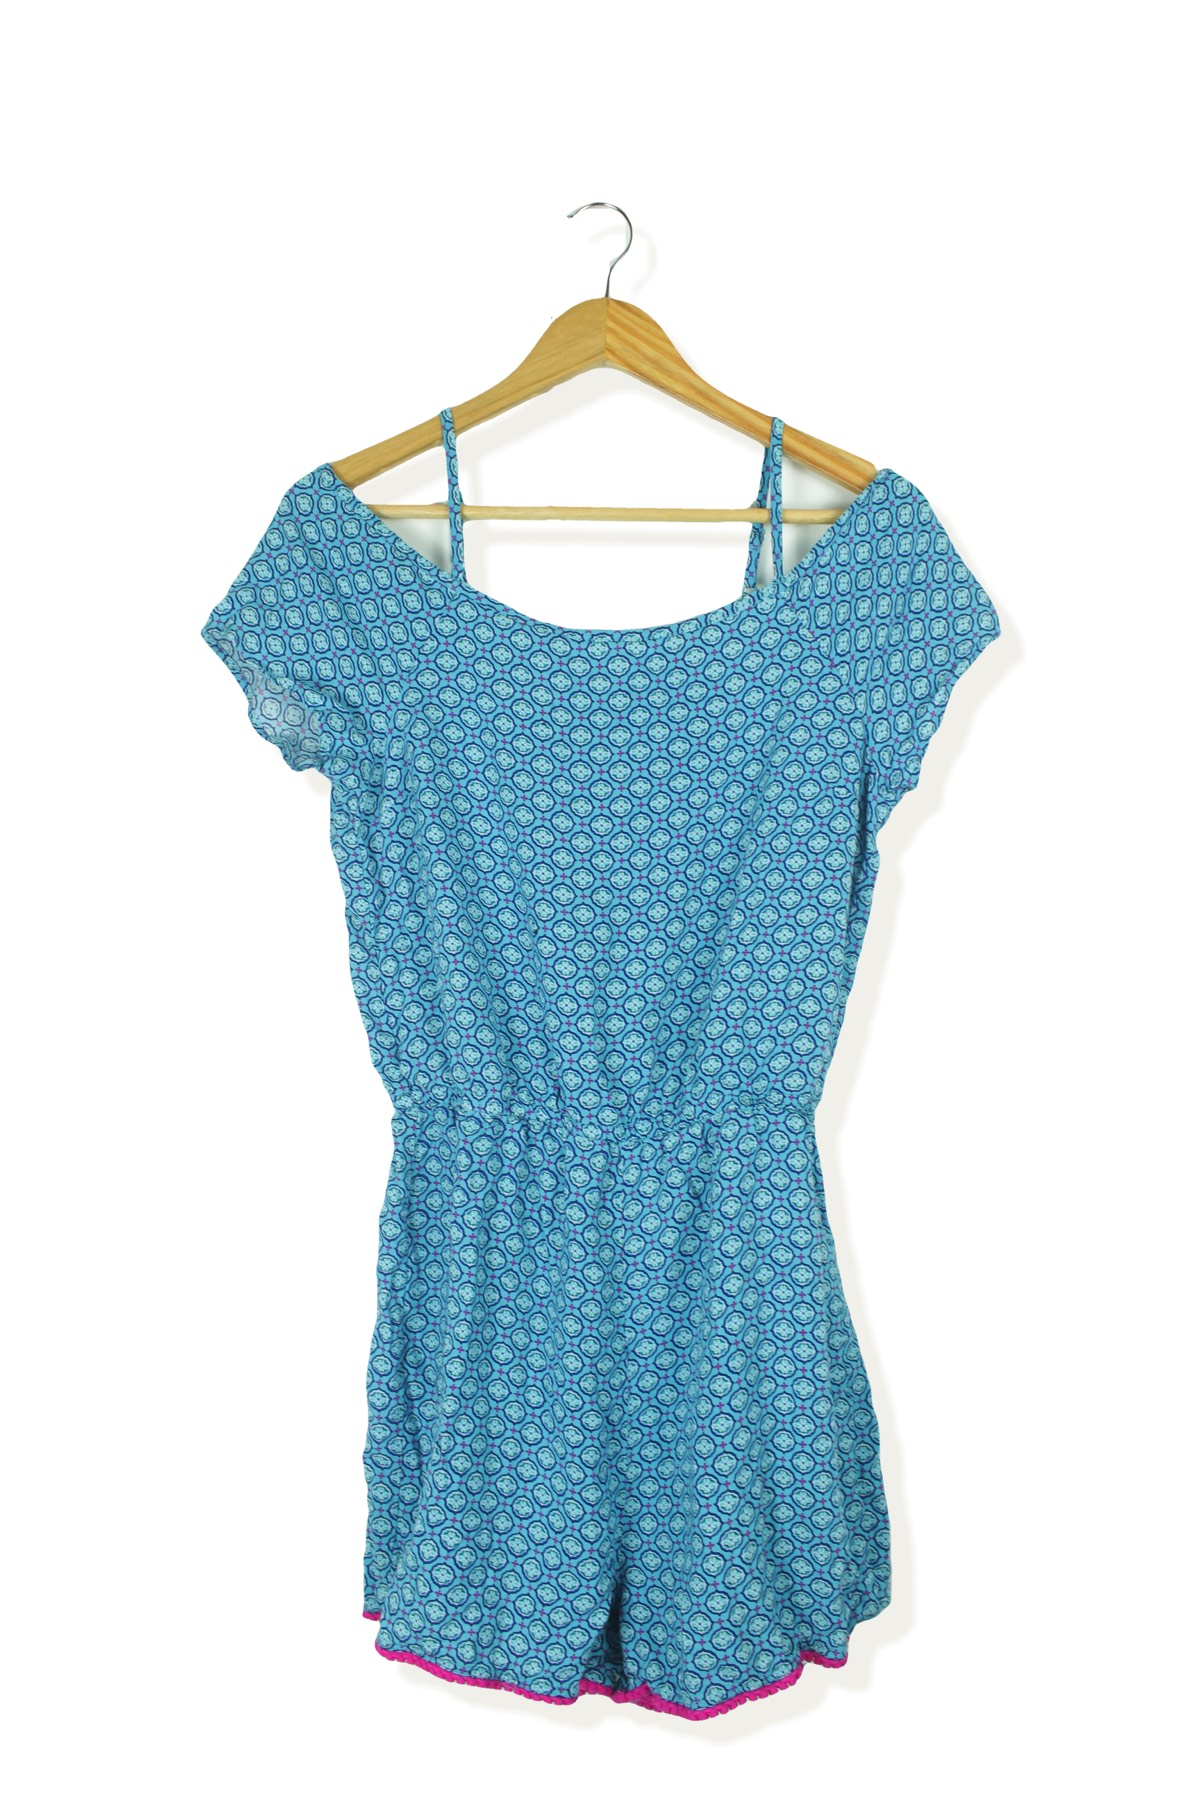 Second-hand Clothing - Women, Jumpsuits & Playsuits, Second-Hand Clothing